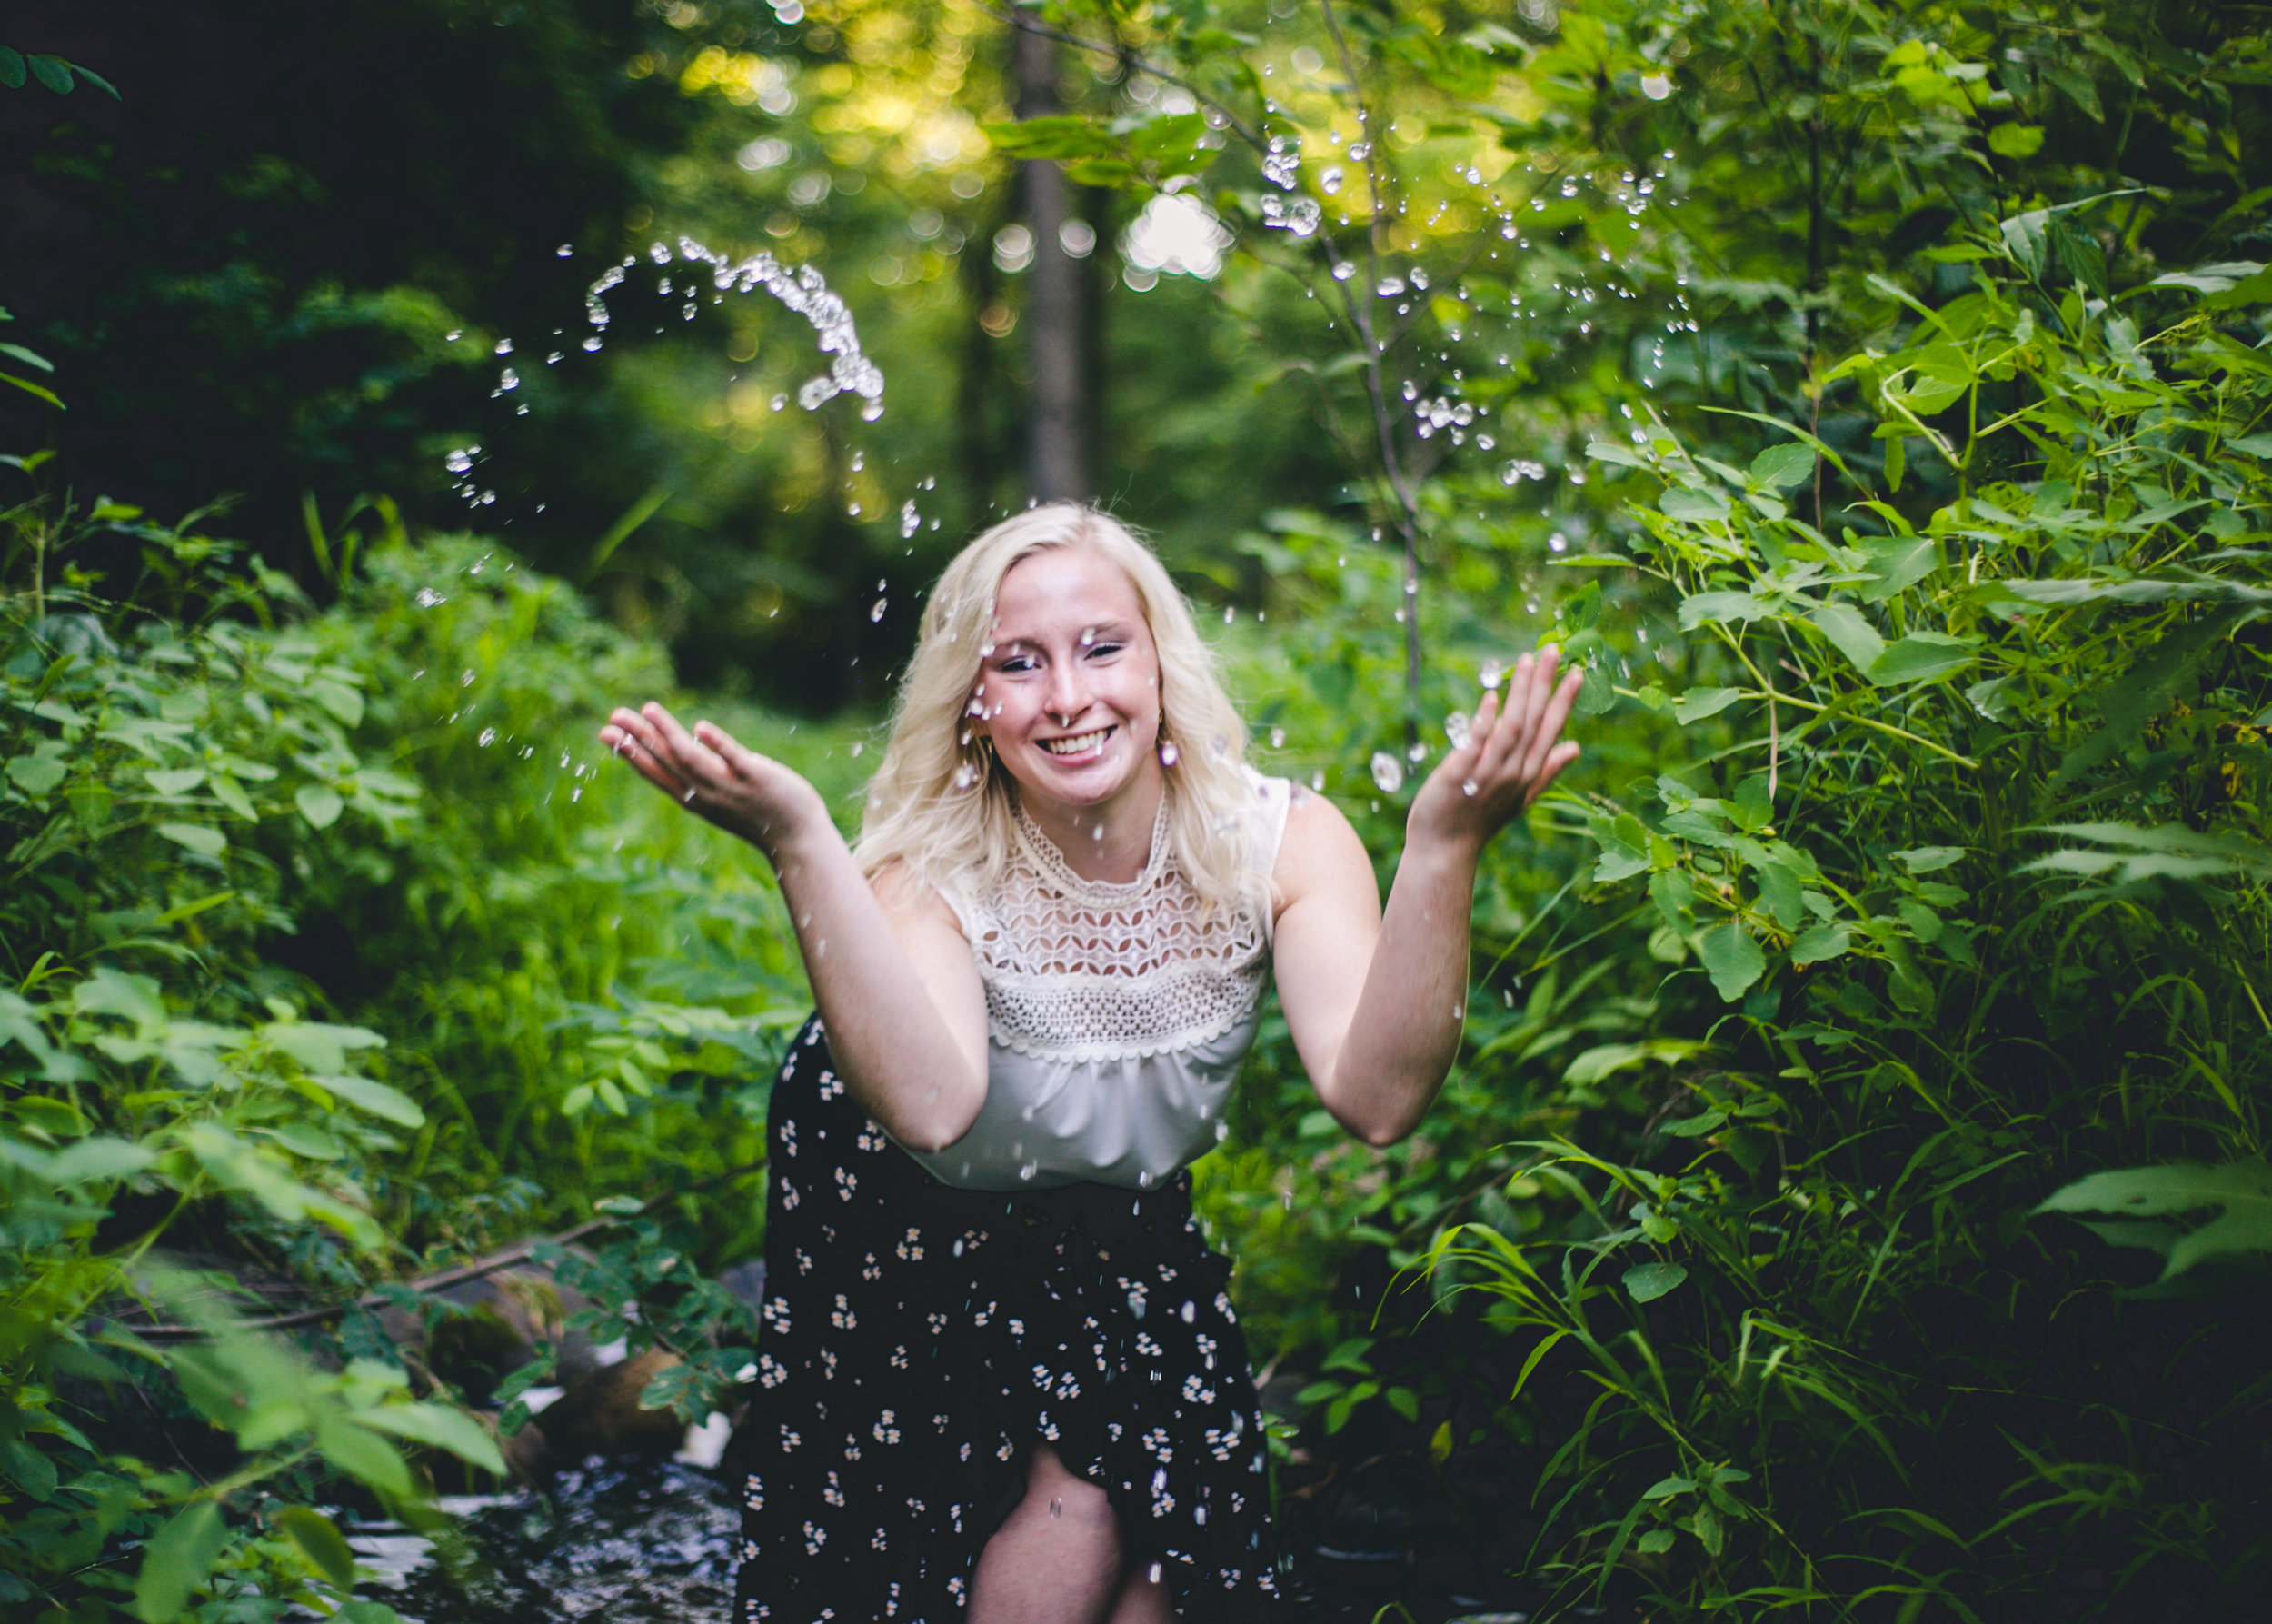 Girl smiles and throws water from stream